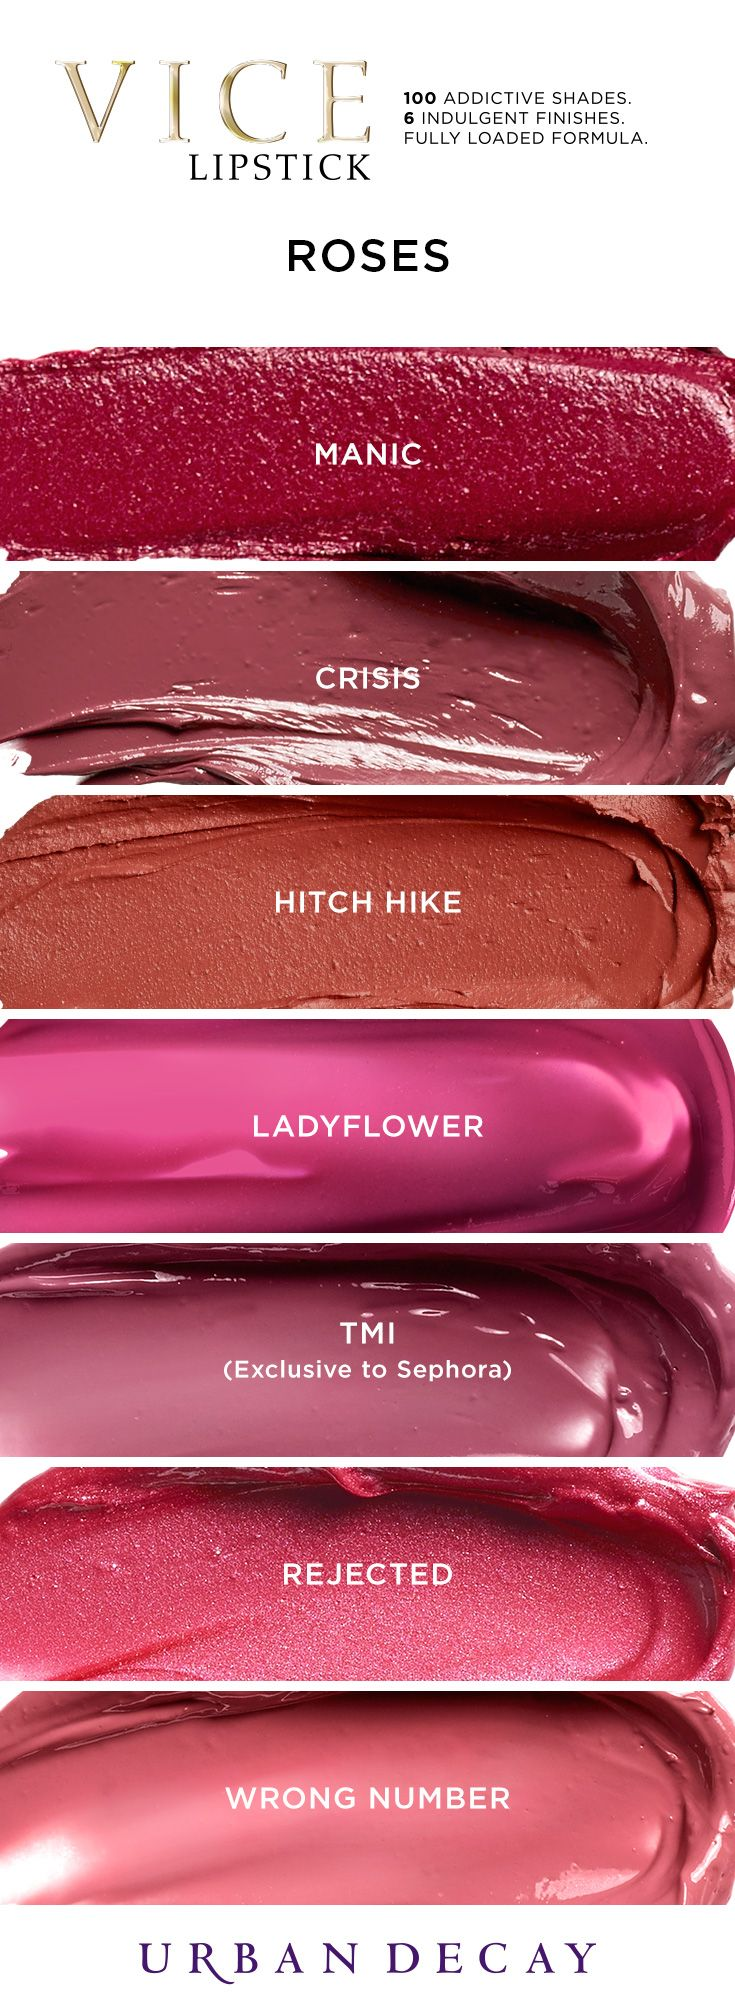 Yes Way, Rosé! Get a taste of these Vice Lipstick shades now at Urban Decay. #LipstickIsMyVice